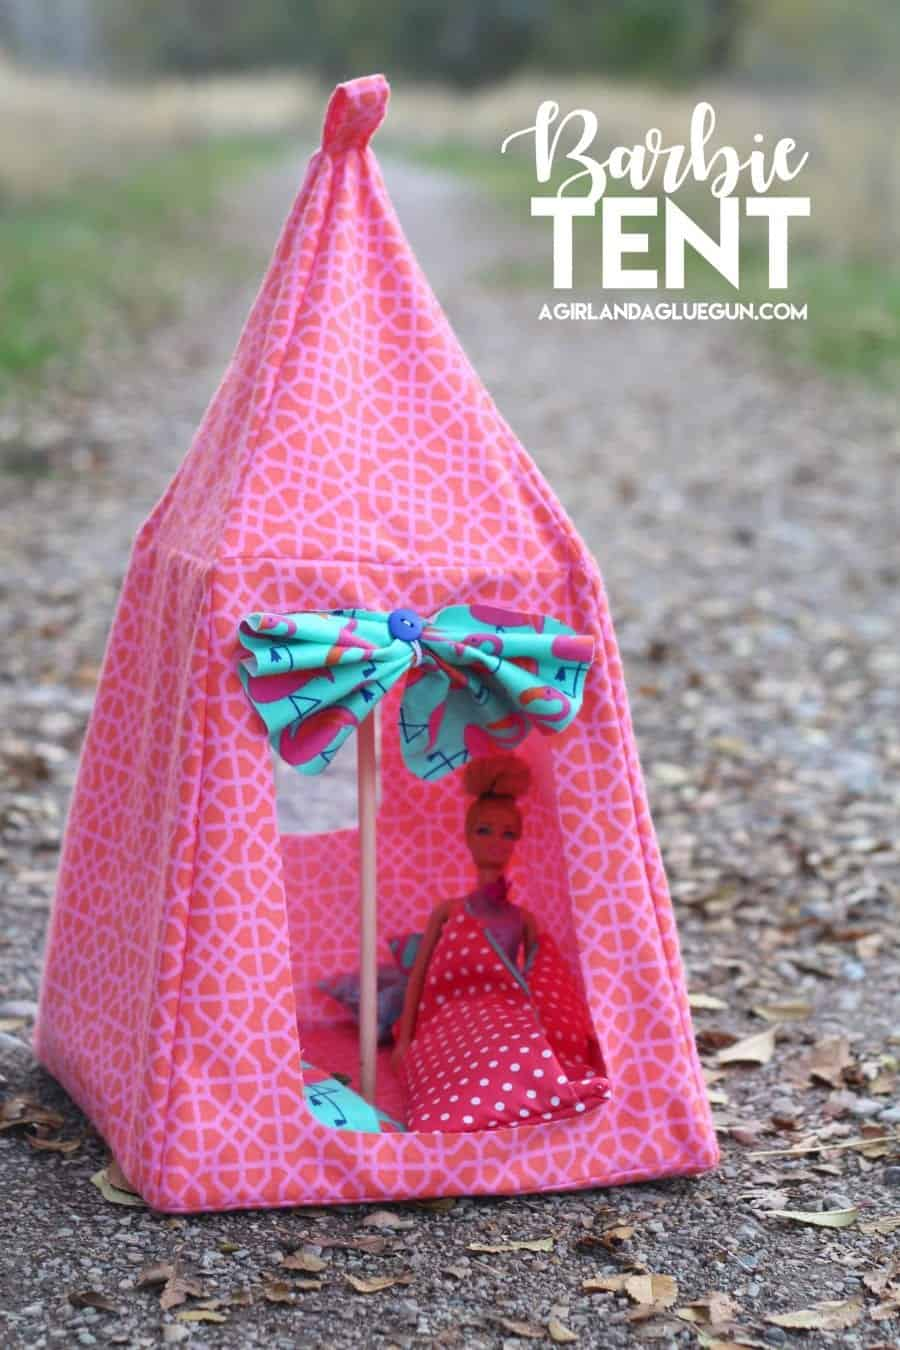 barbie-tent-12 & Barbie Tent Pattern - A girl and a glue gun